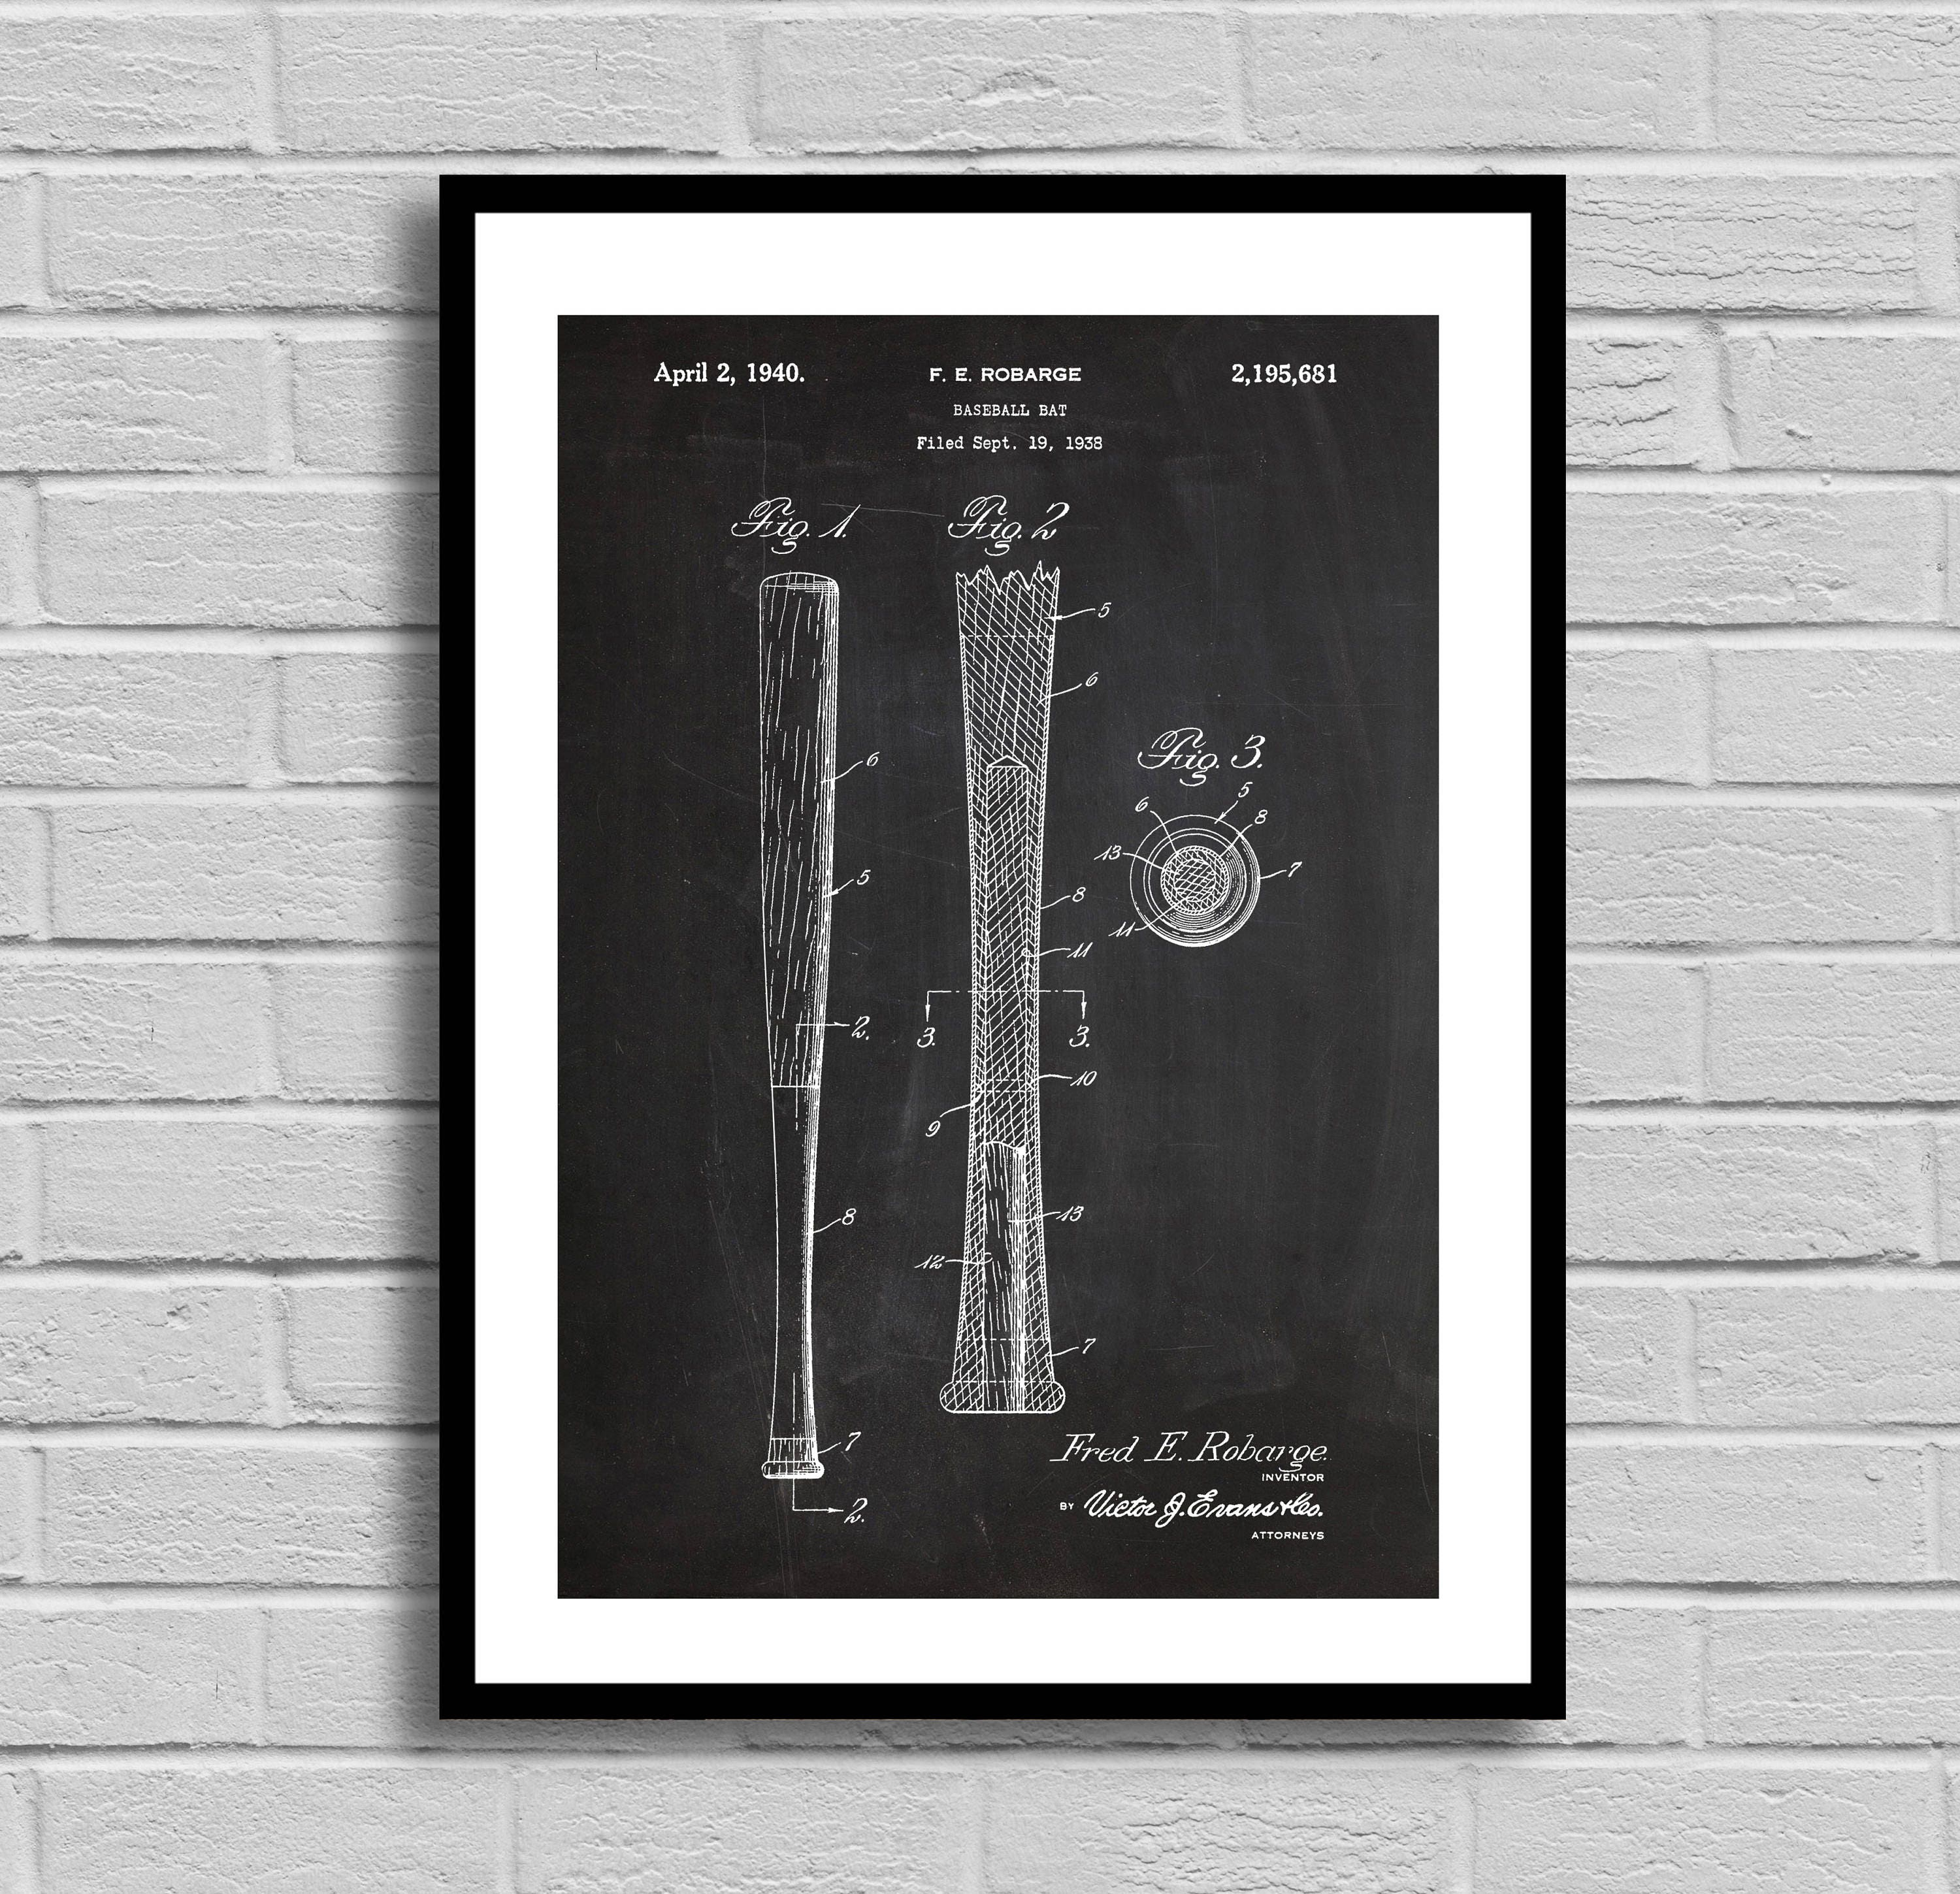 Baseball bat patent baseball bat patent poster baseball bat baseball bat patent baseball bat patent poster baseball bat blueprint baseball bat printsports decorbaseball decorathlete giftvintage malvernweather Image collections